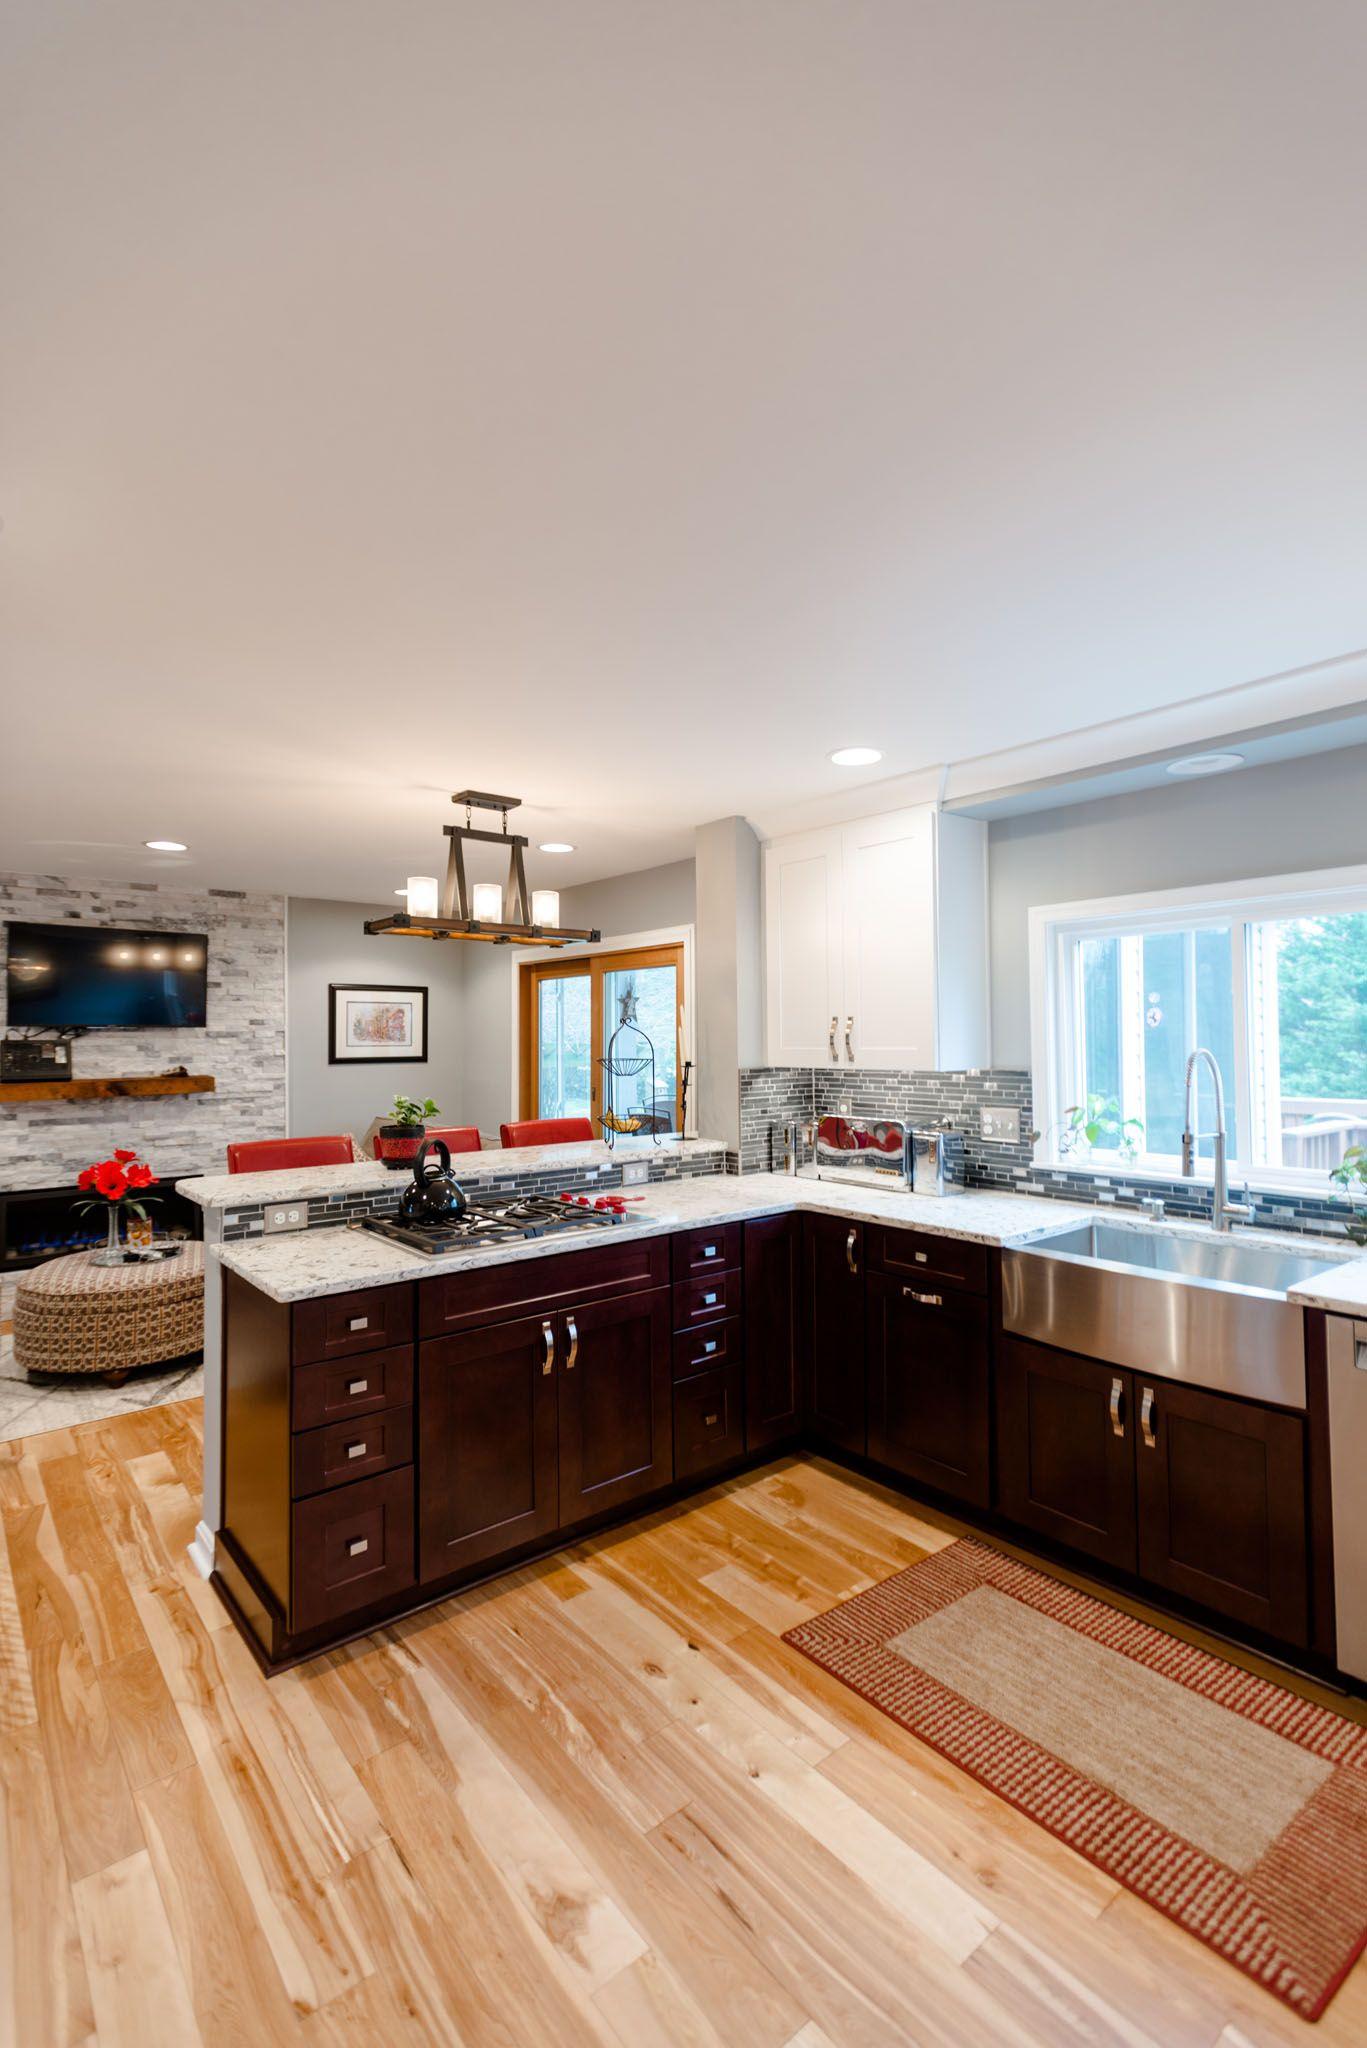 This contemporary kitchen remodel creates a beautiful open layout  connecting the kitchen, dining, and living areas. With White Linen and  Cherry Bordeaux ...